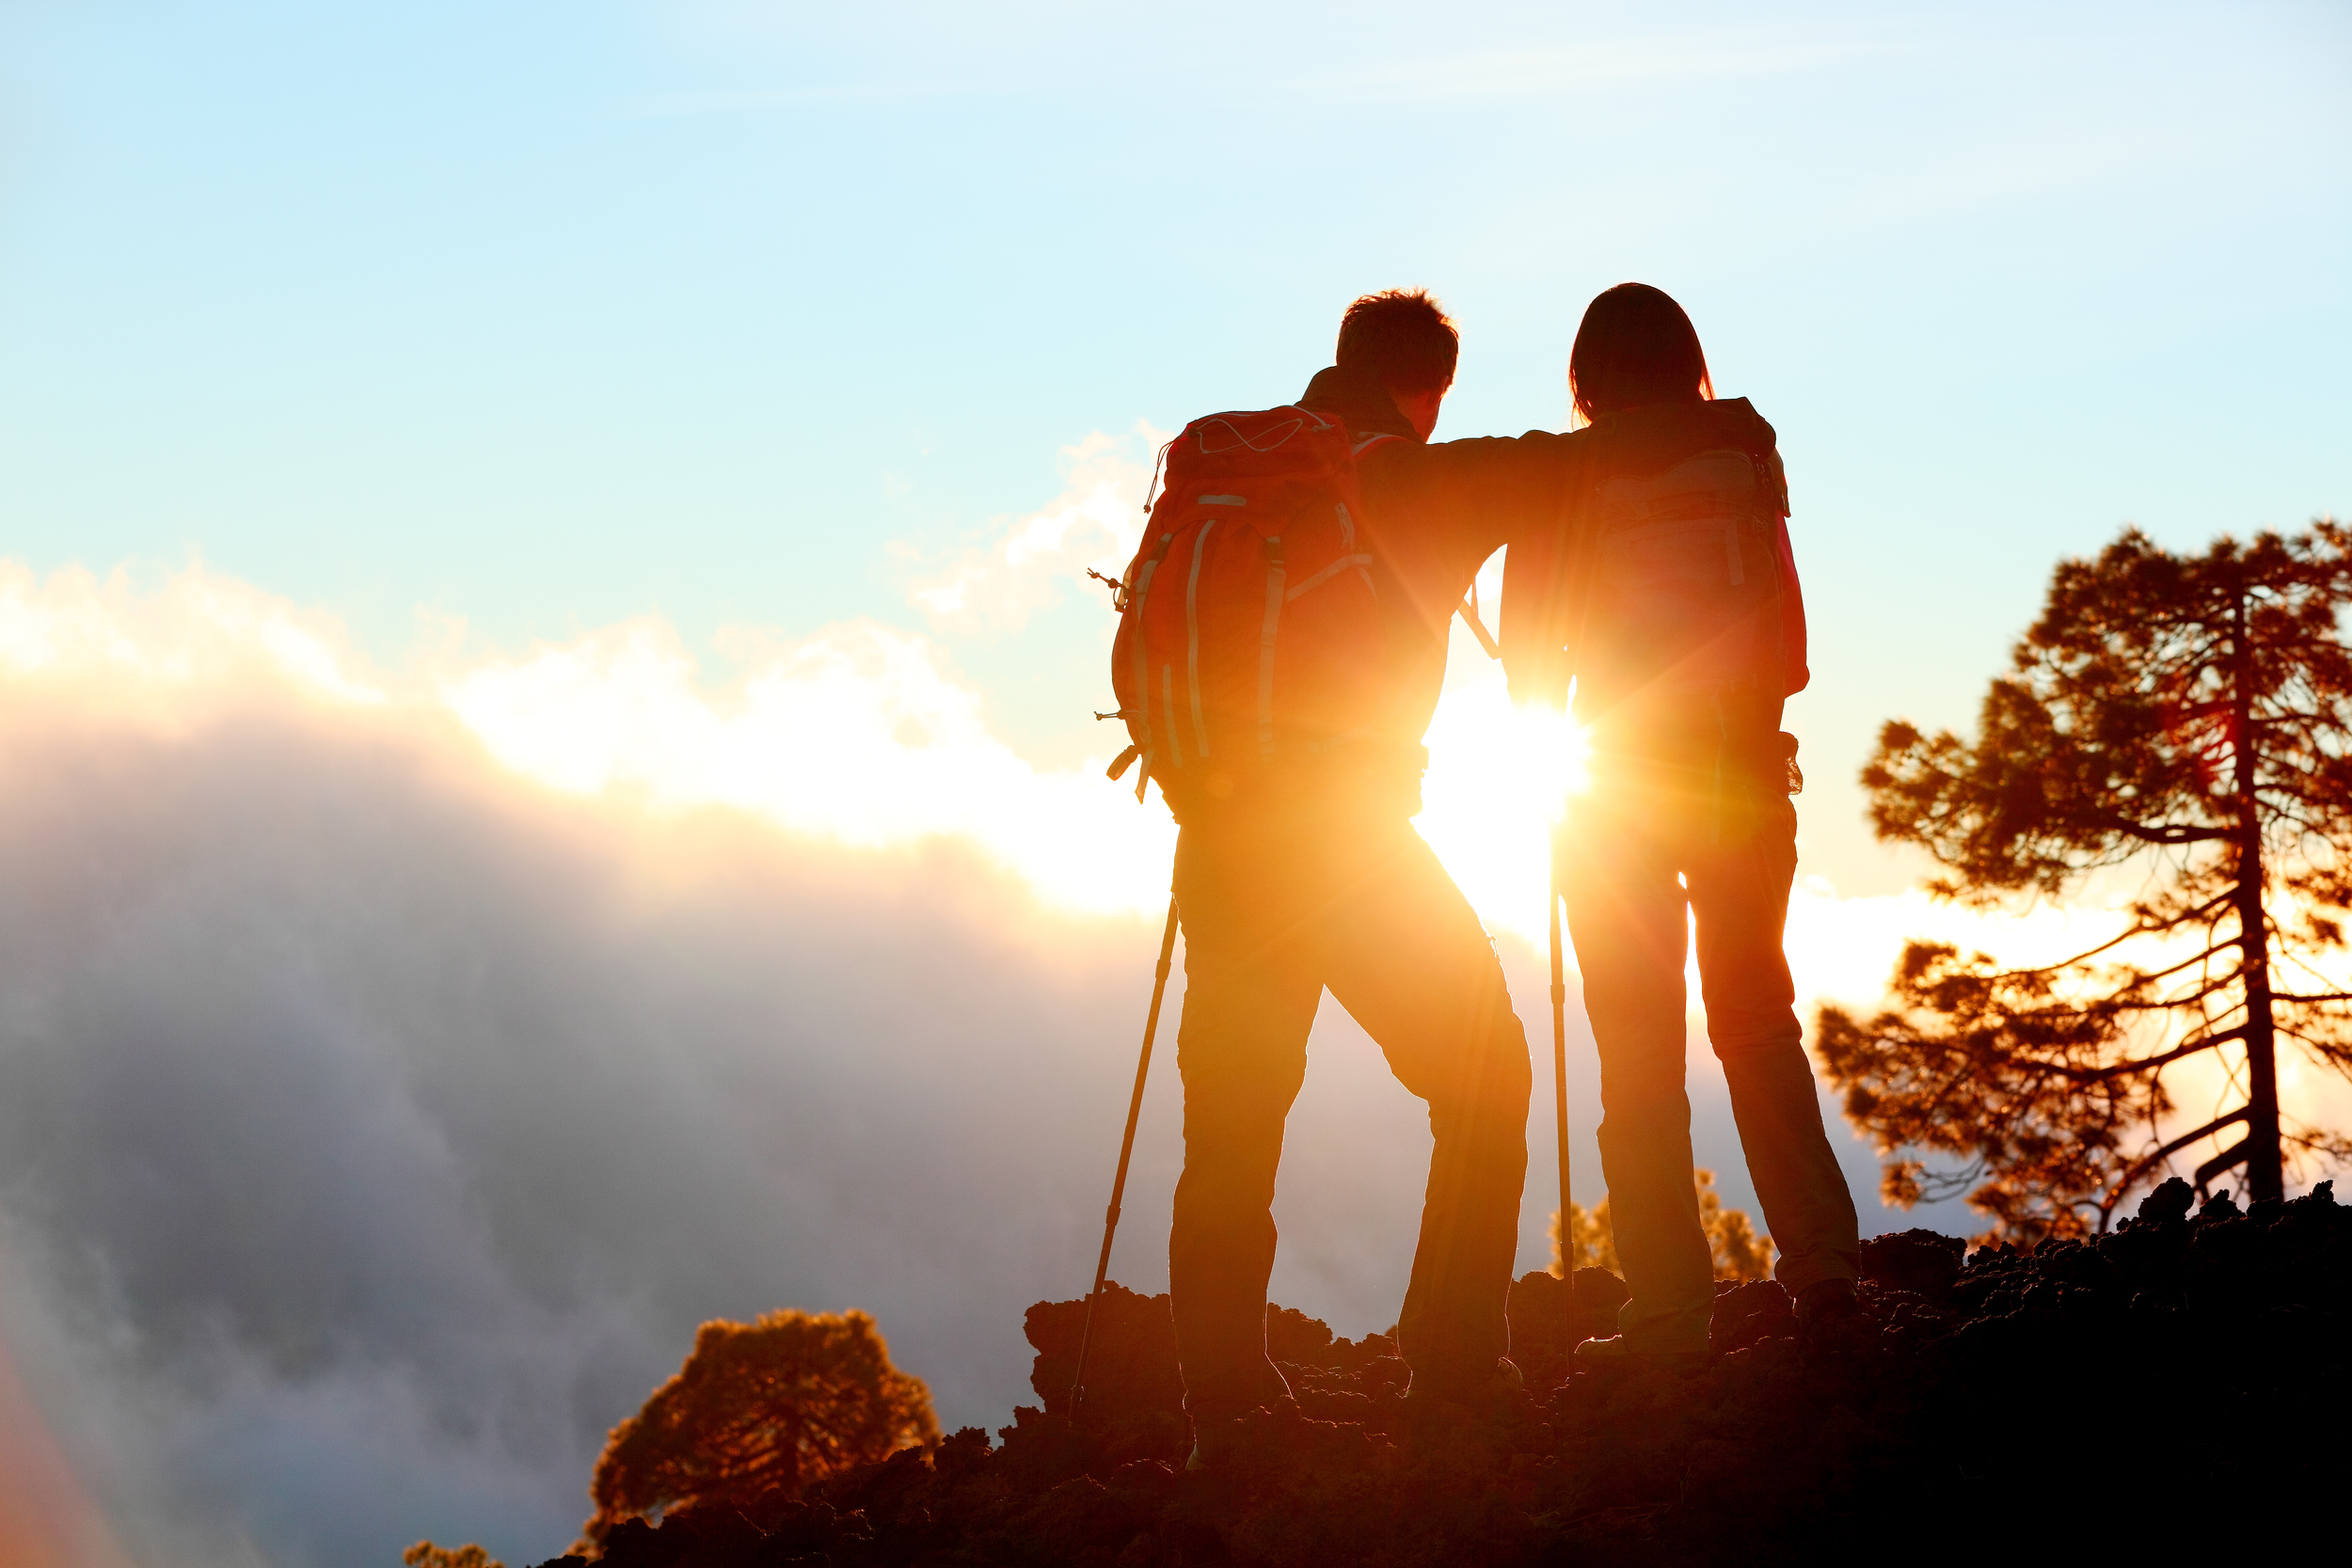 bigstock-Hiking-adventure-healthy-outdo-74257267.jpg